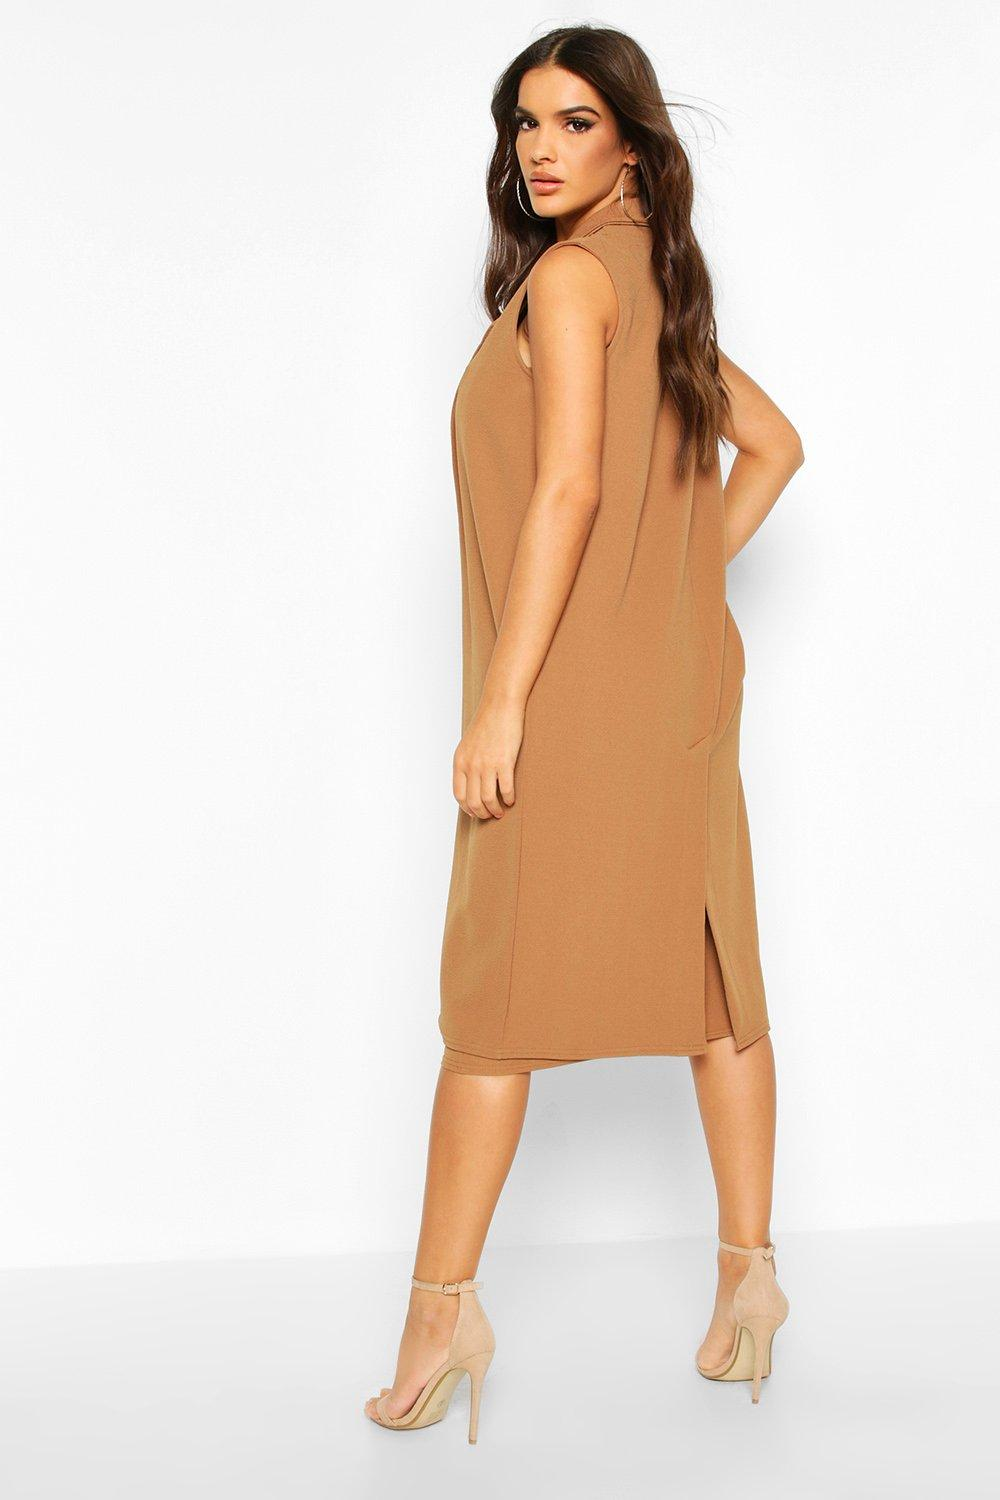 Dana Three Piece Shirt, Skirt and Duster Set-Woven Trends